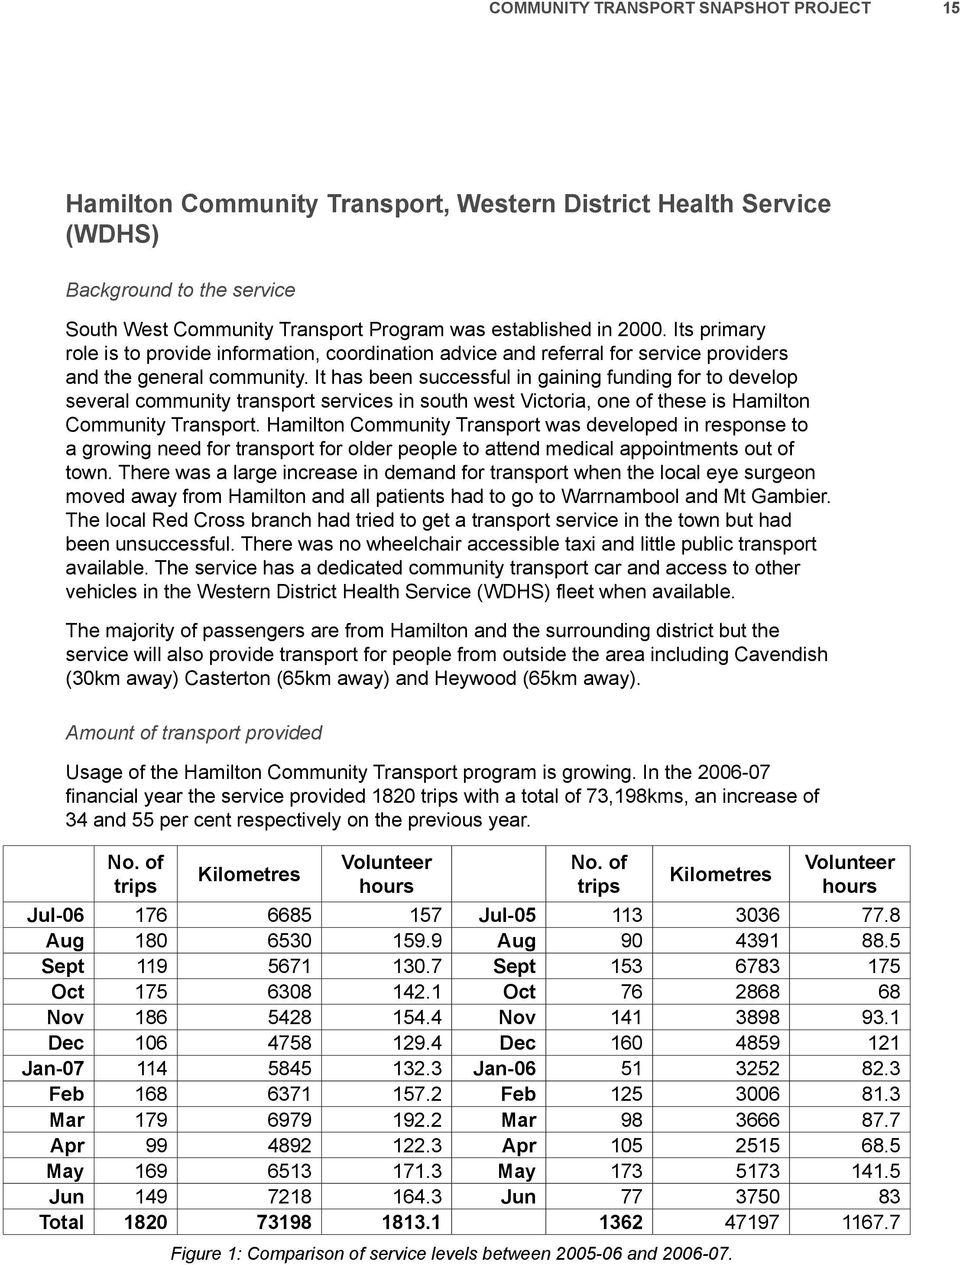 It has been successful in gaining funding for to develop several community transport services in south west Victoria, one of these is Hamilton Community Transport.